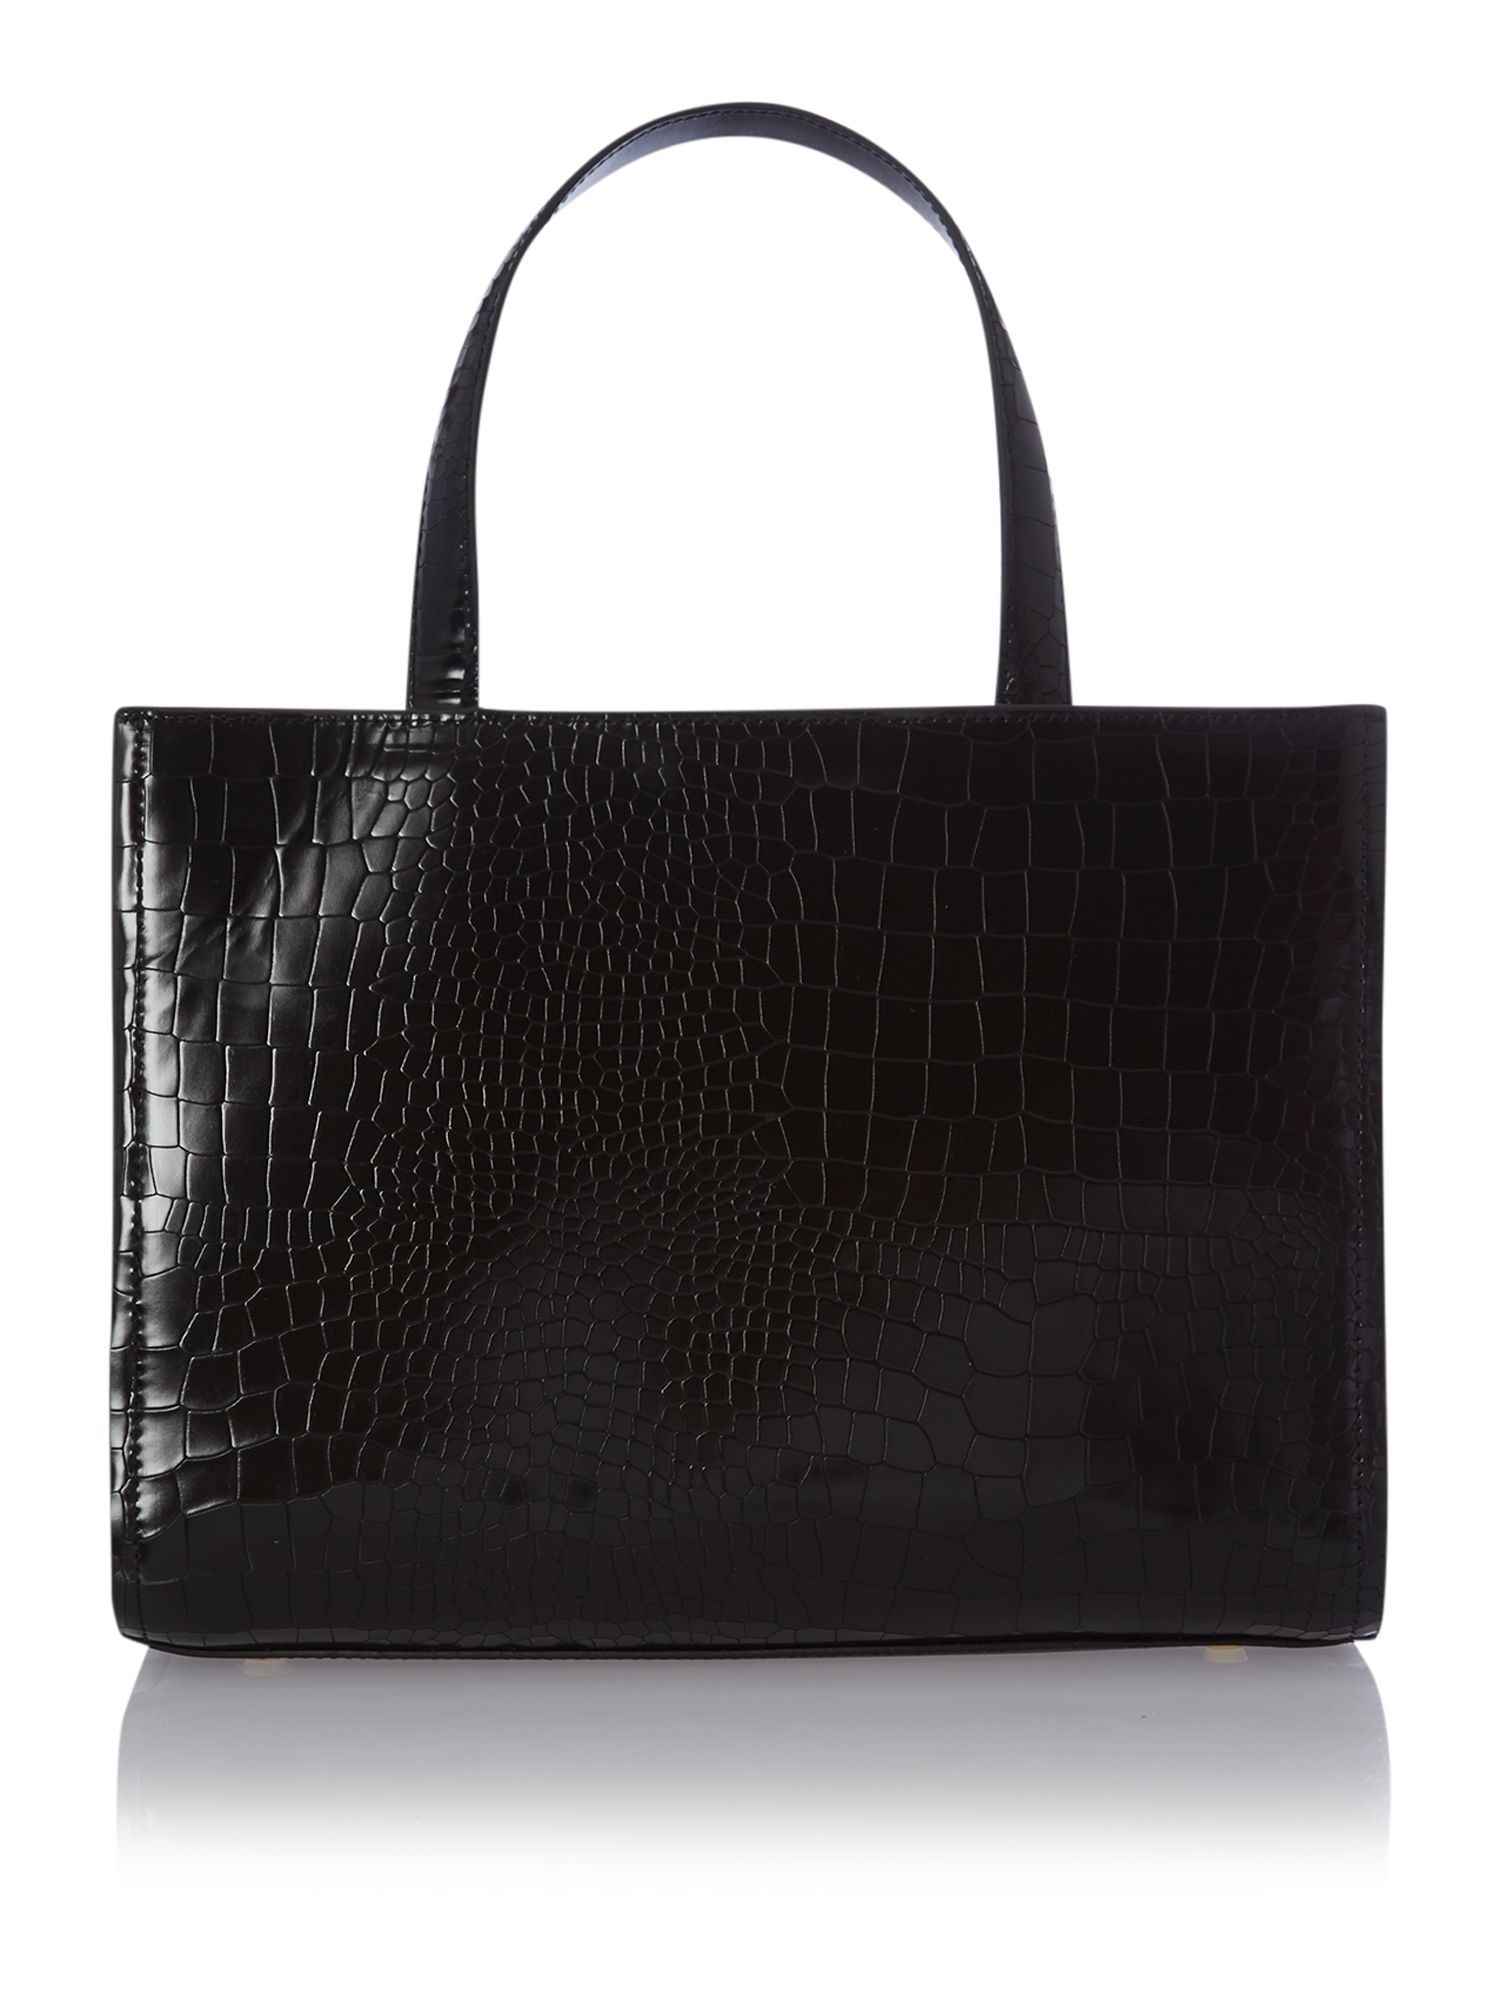 Medium black metal t-bar tote bag